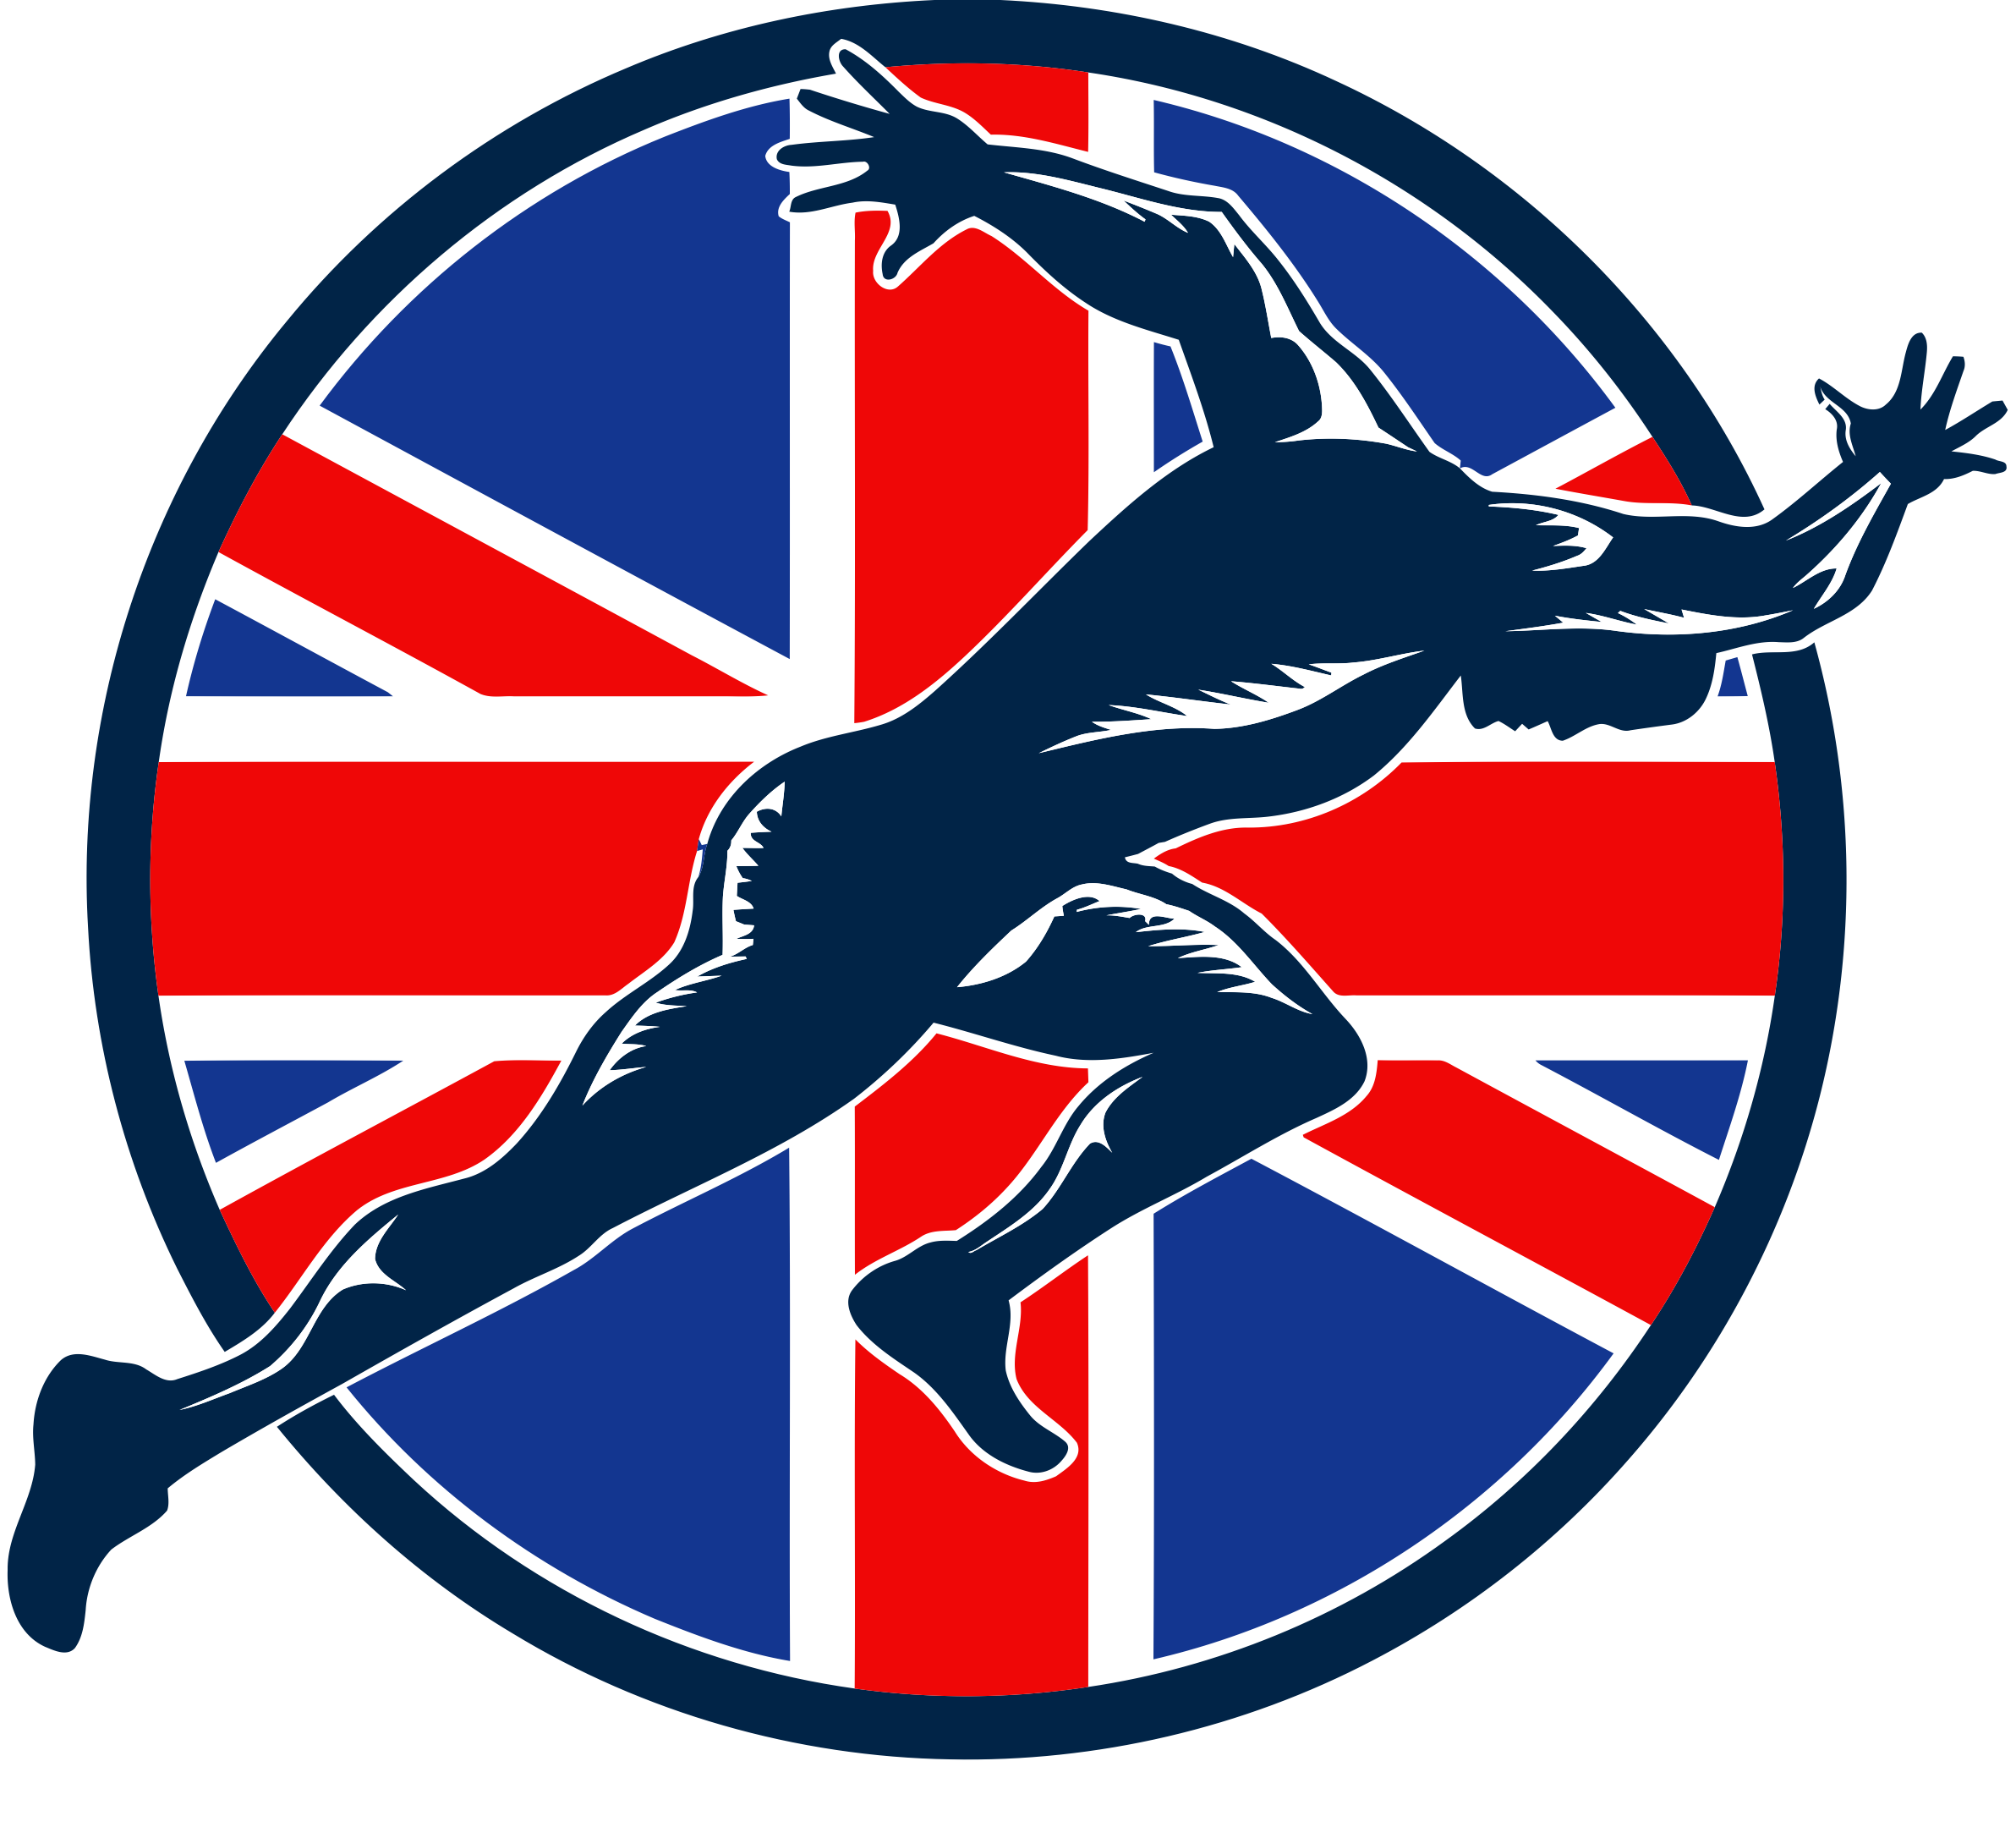 runner-sprinter-start-british-flag-circl